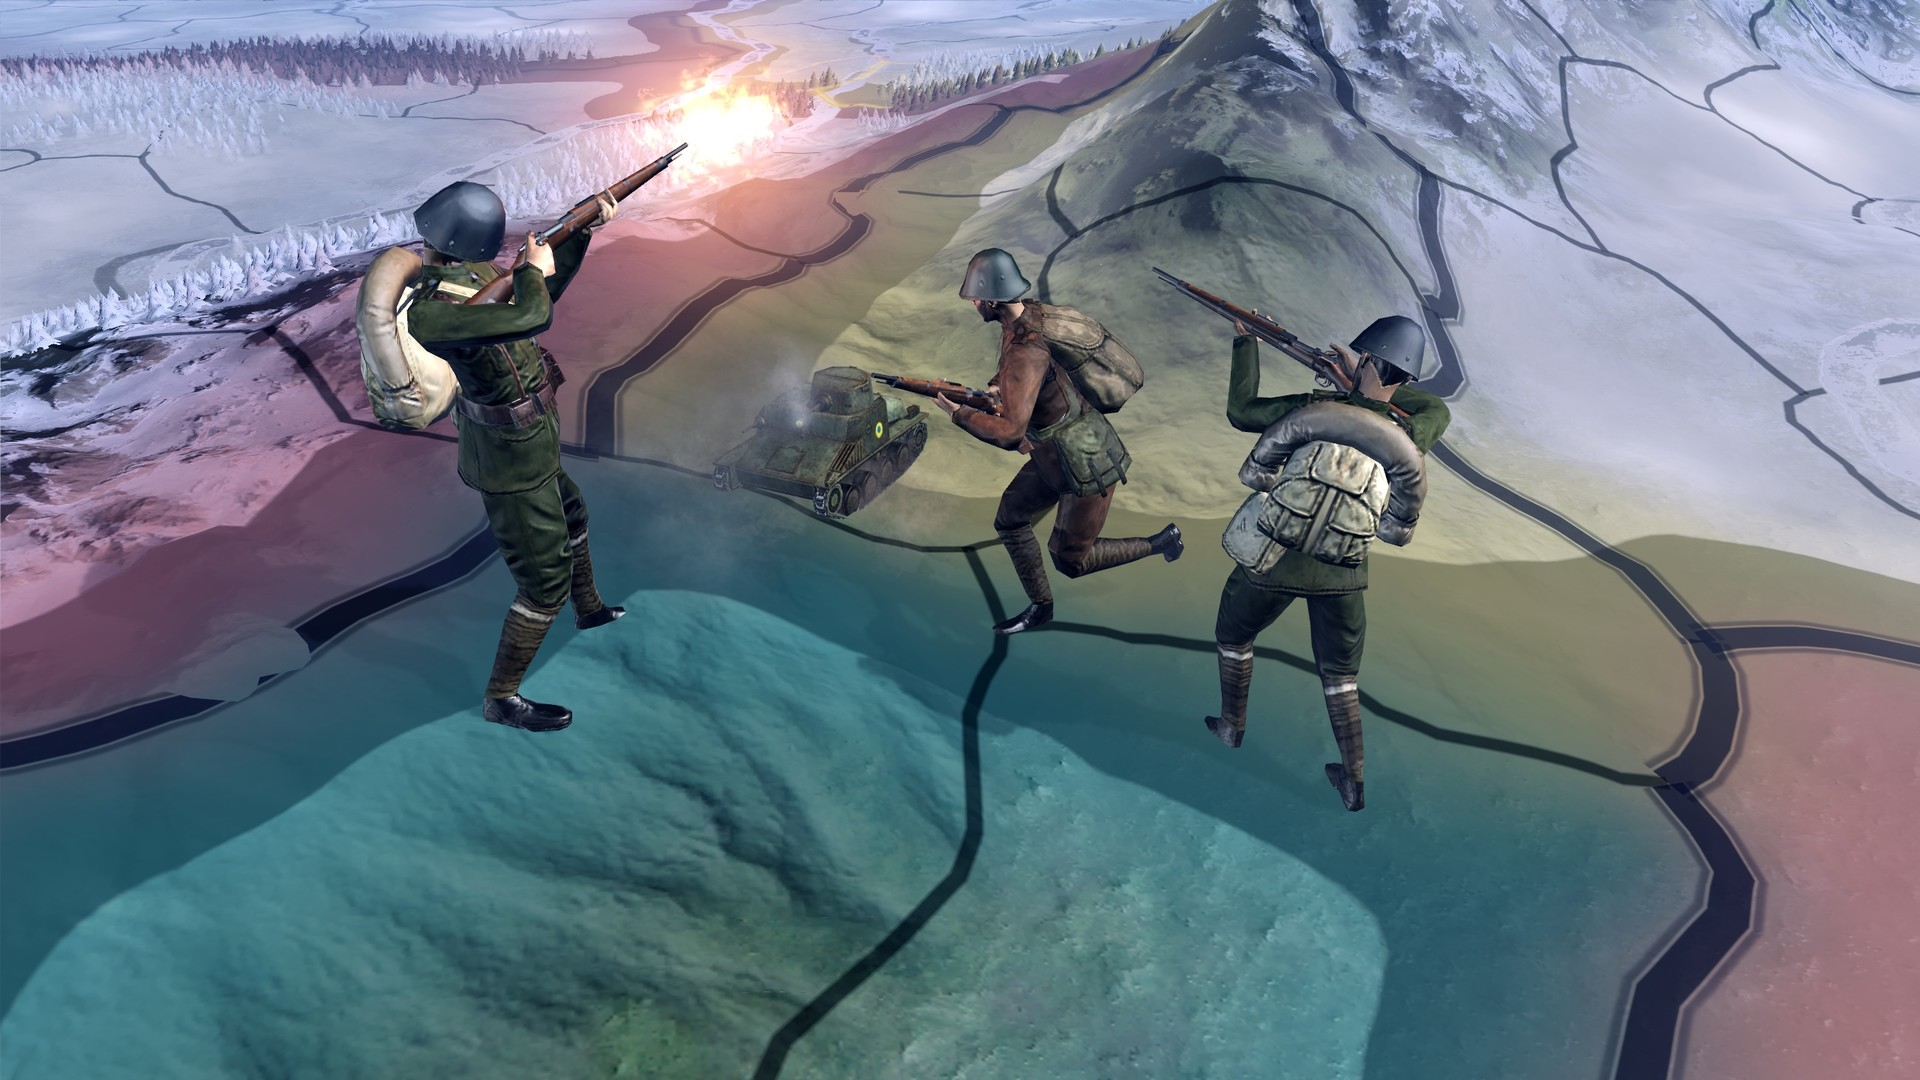 free download hearts of iron iv deat or dishonor cracked by codex include all dlc and latest update copiapop diskokosmiko